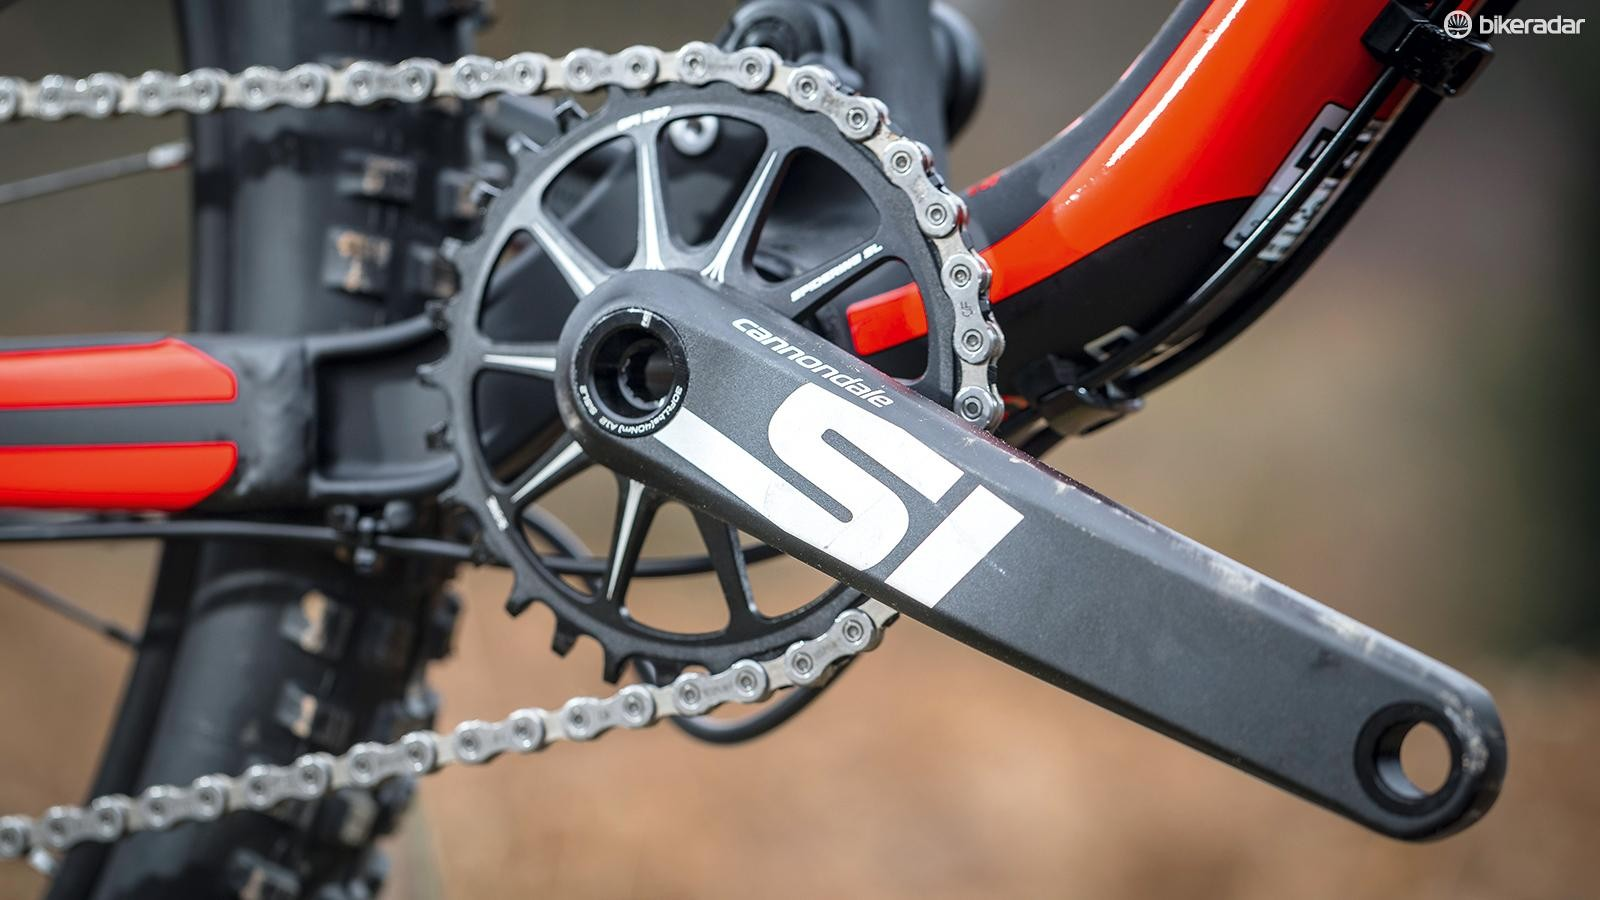 The BallisTec carbon mainframe and carbon suspension link are the same as on the high-end Habit Carbon 1